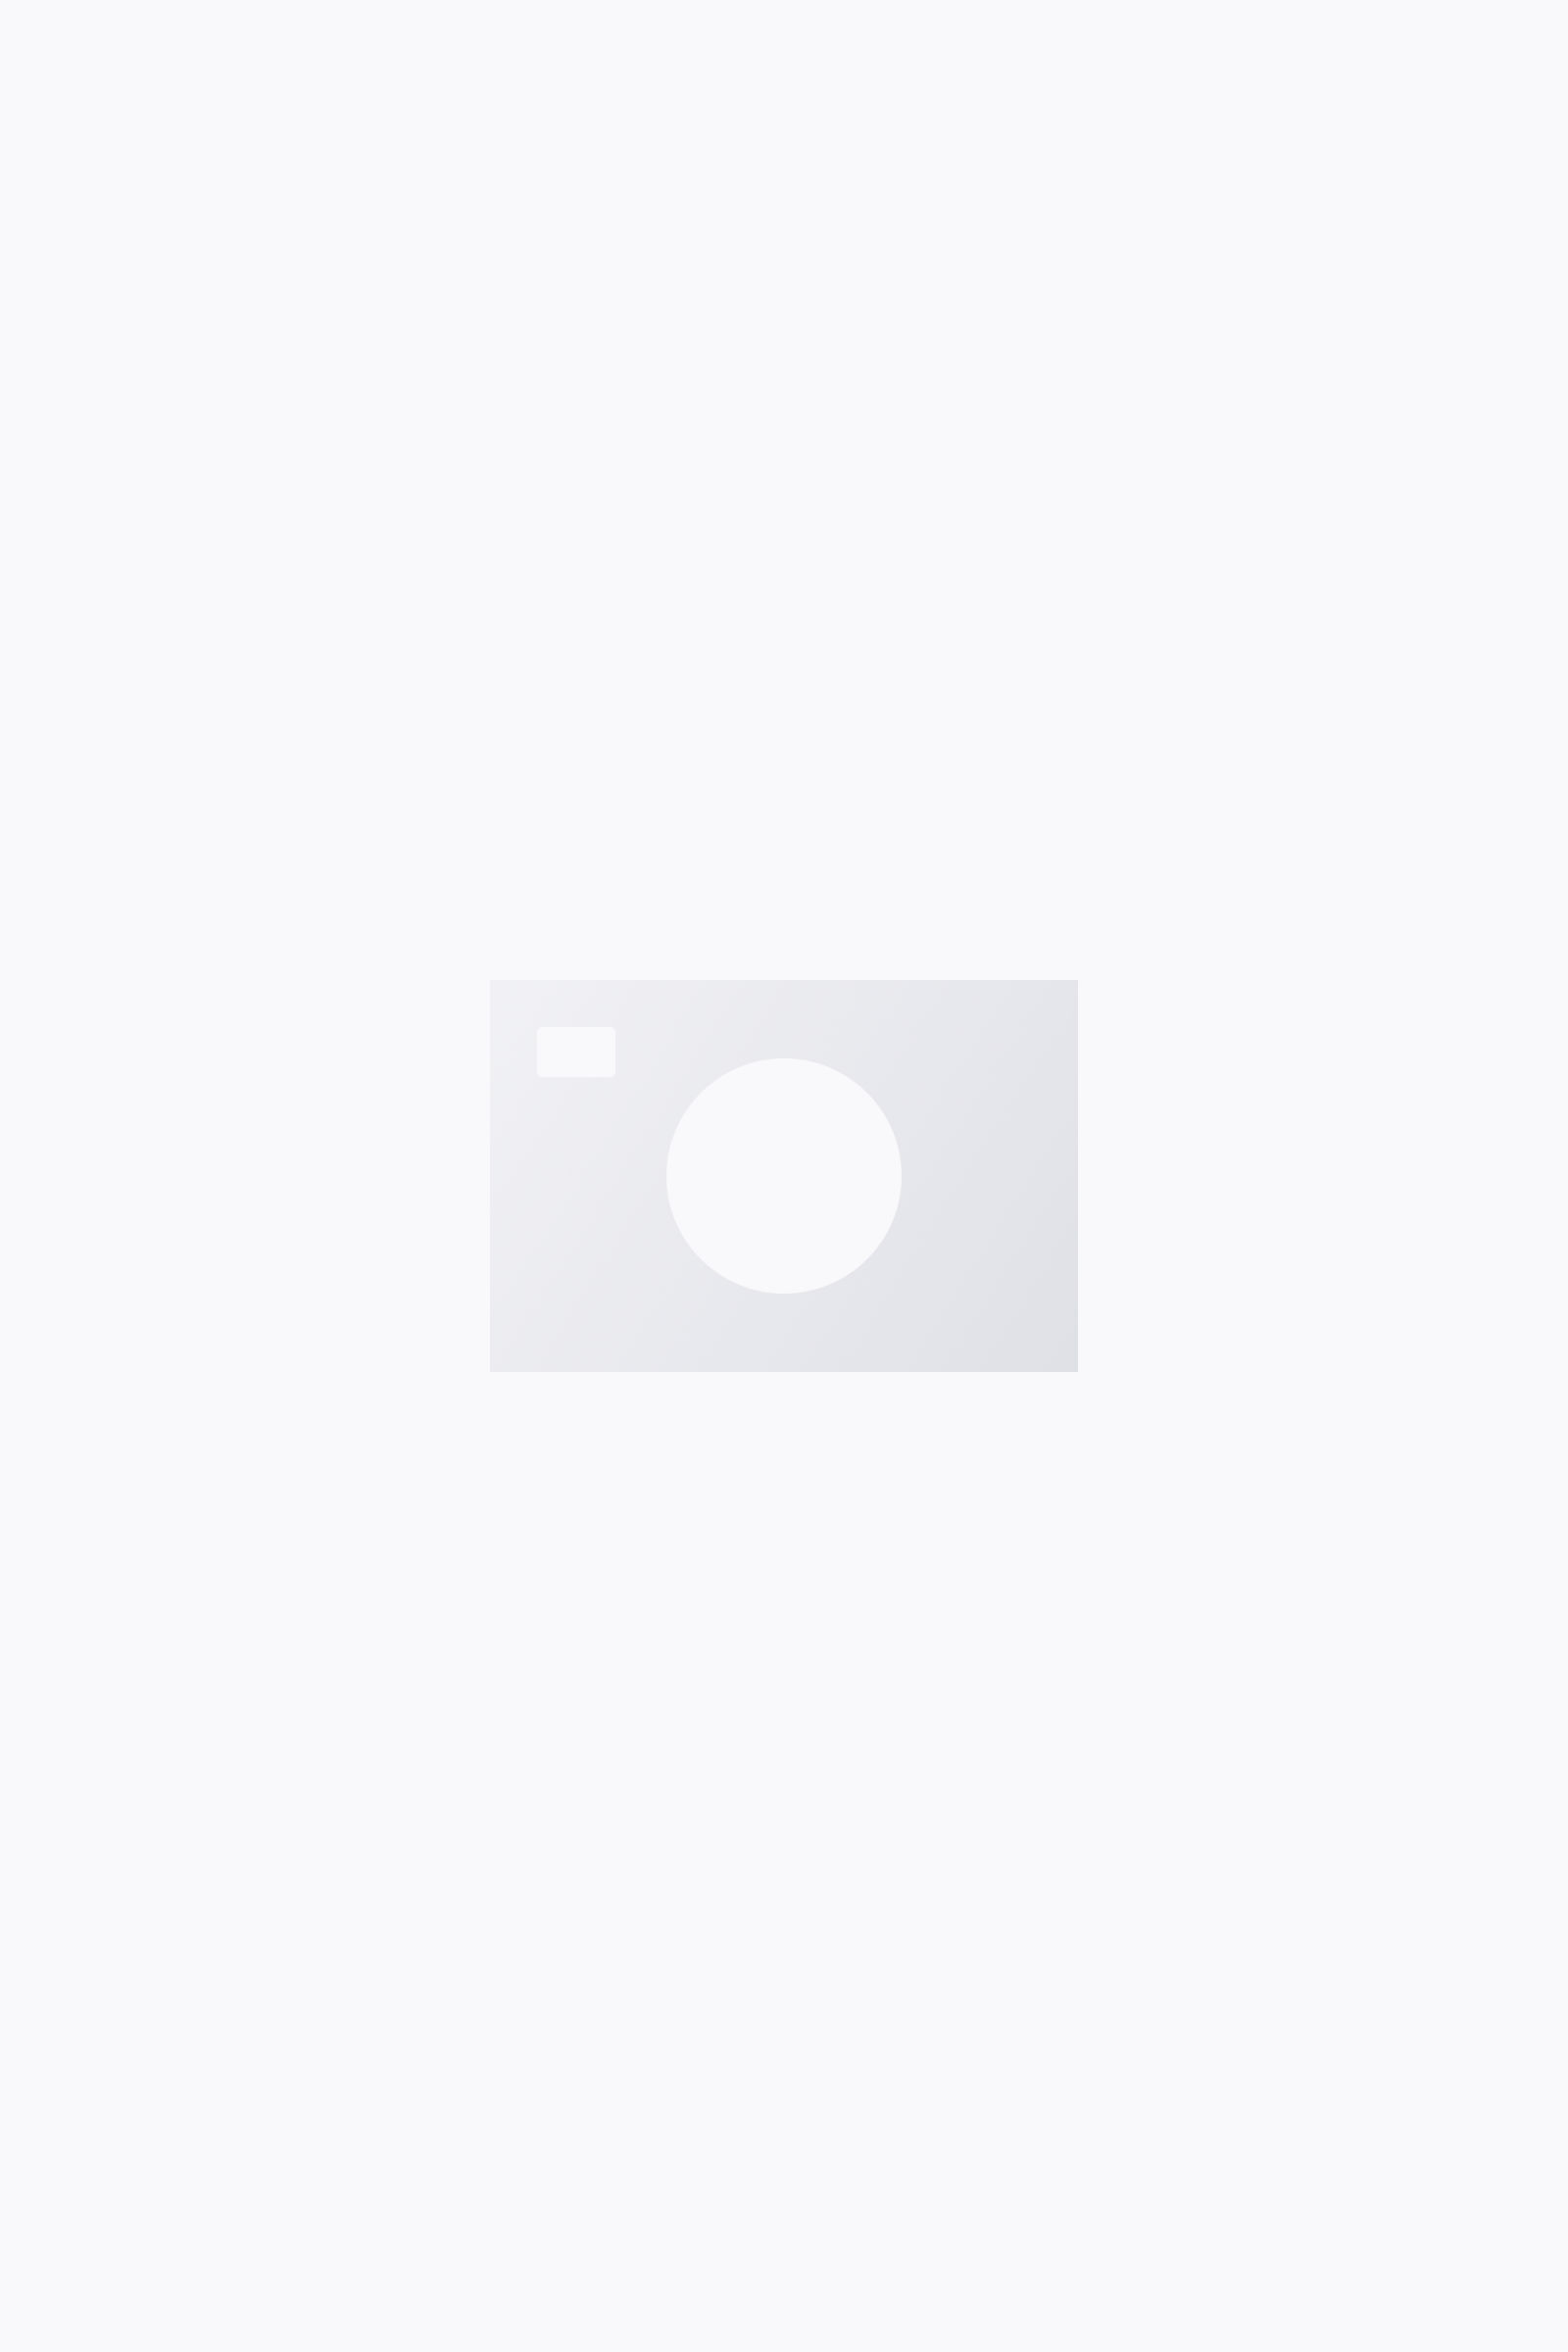 COS LONG COTTON SHORTS,white